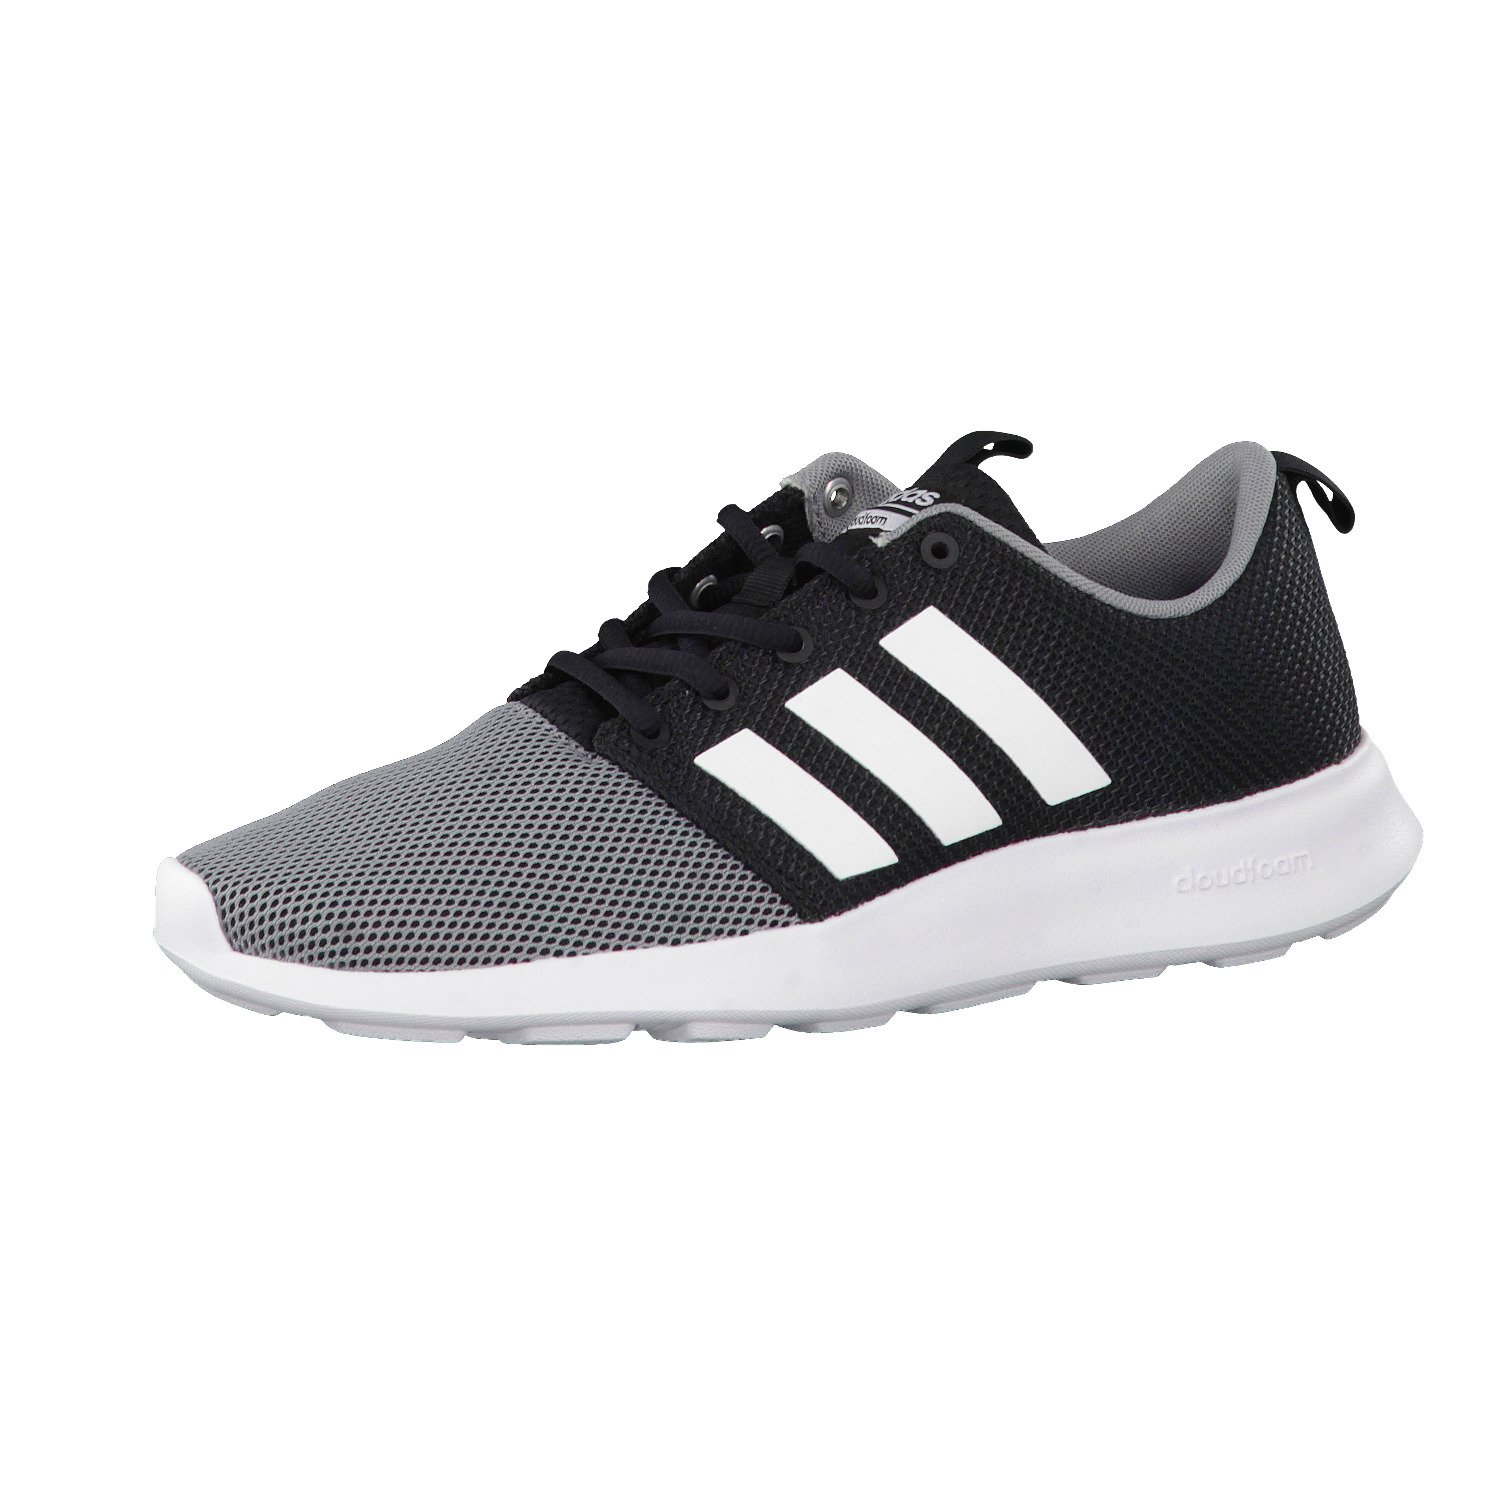 : adidas cloudfoam swift racer aw4159 colore: nero